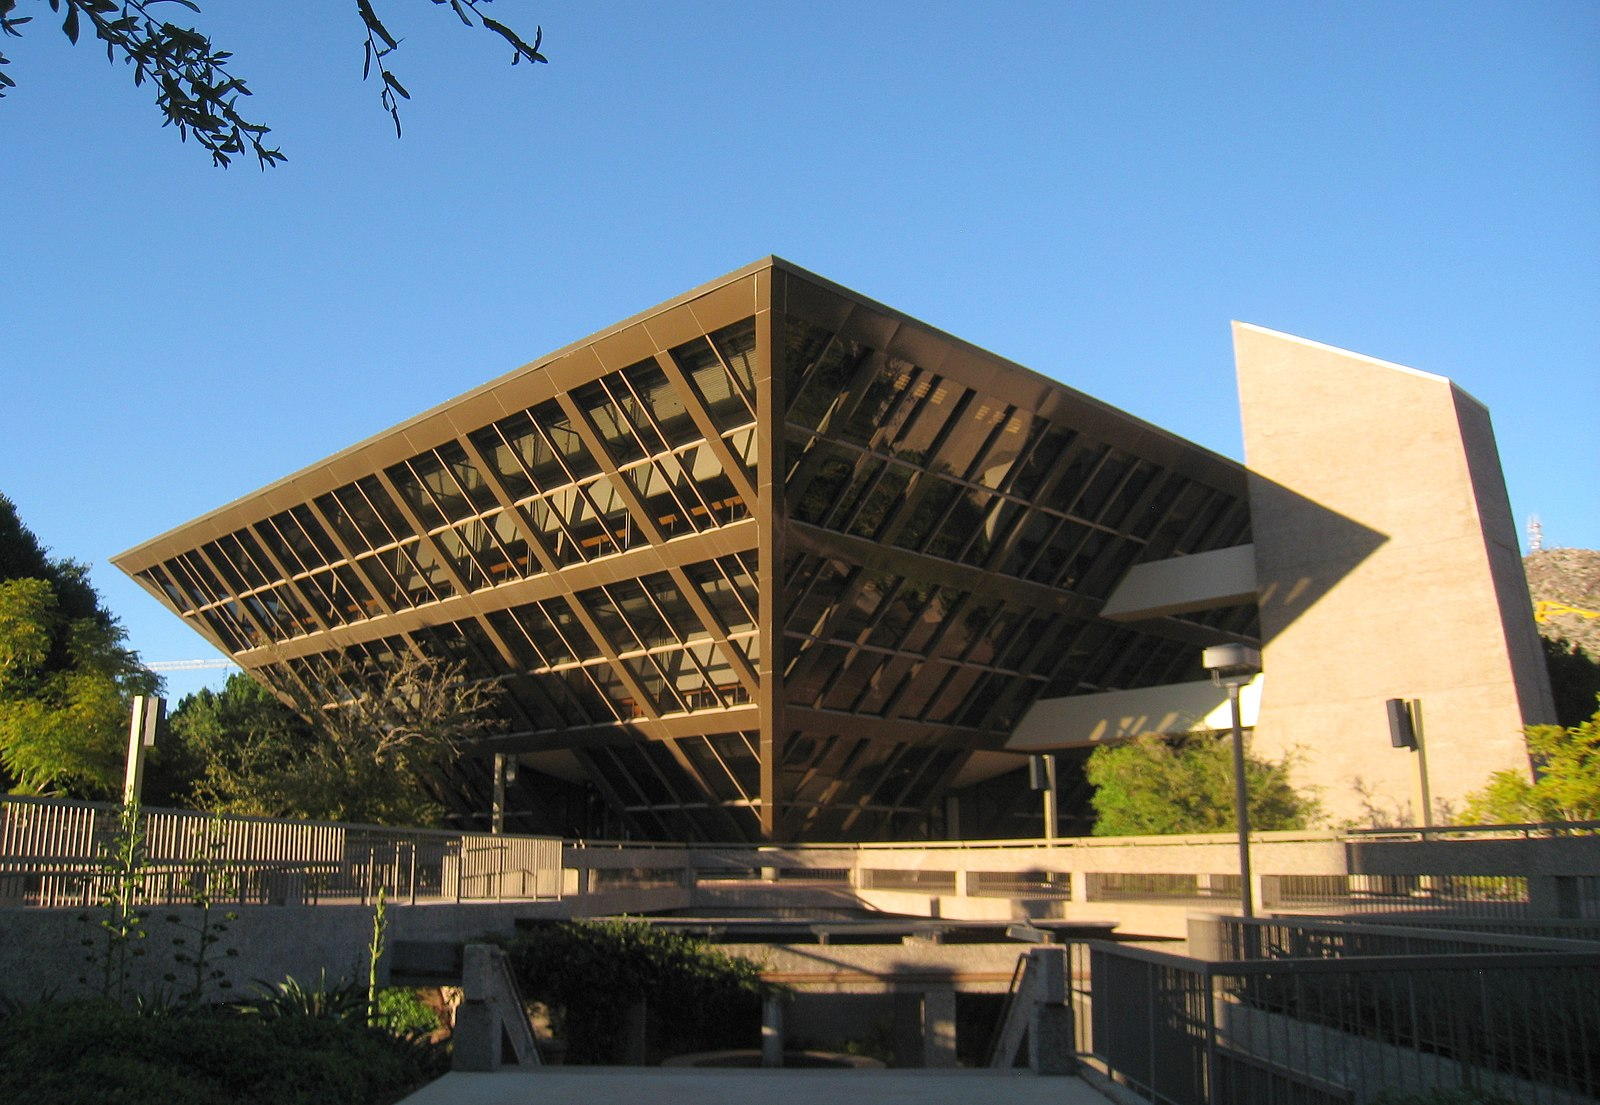 1600px-Tempe_City_Hall_-_Tempe%2C_AZ.JPG